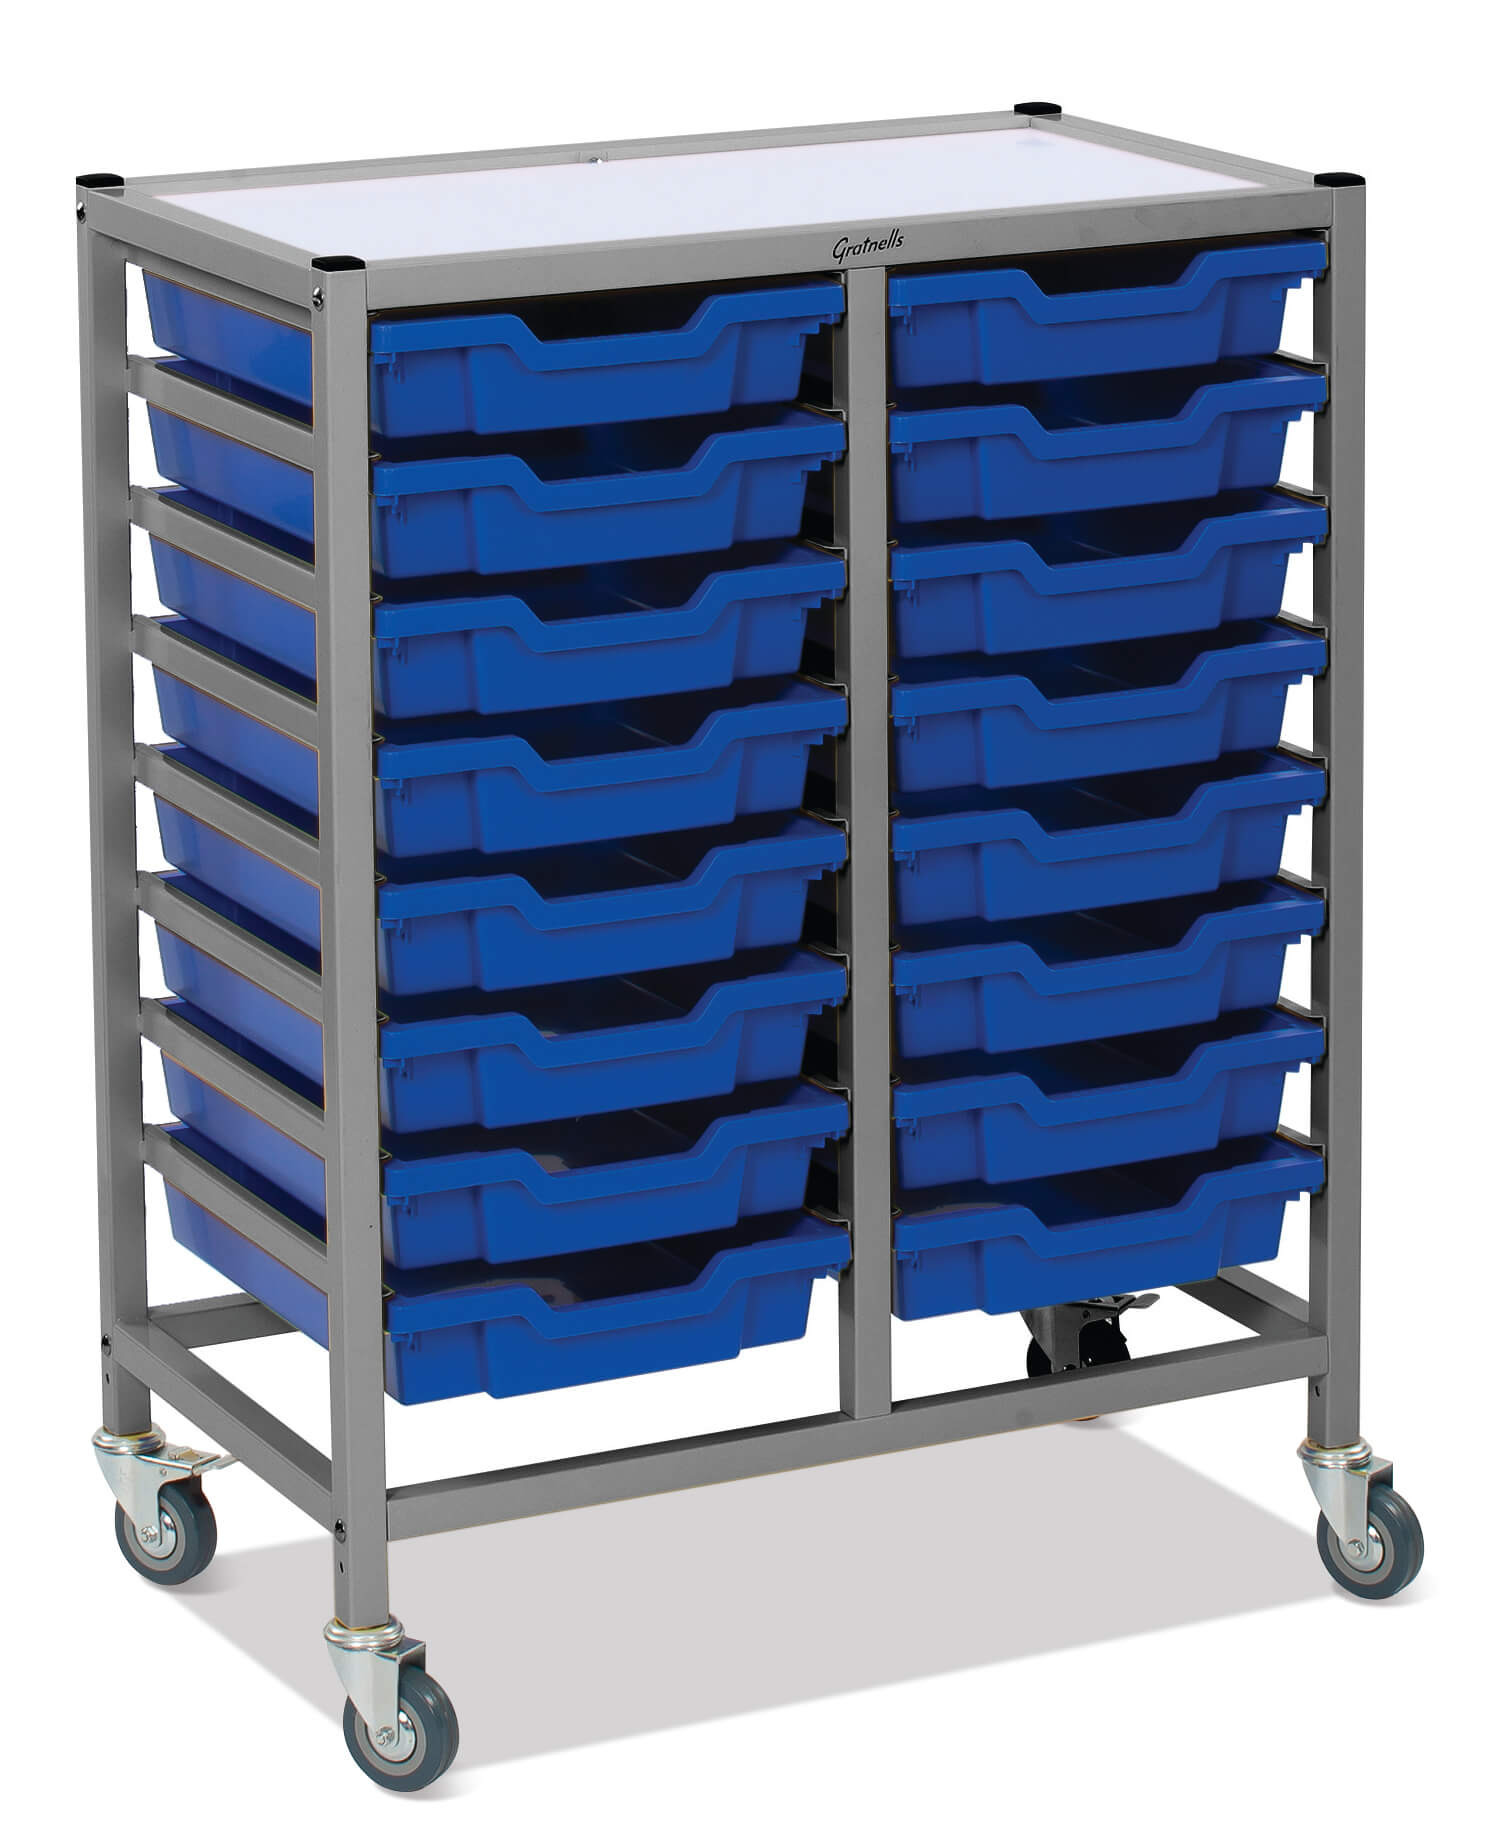 Gratnells Double Column Trolley Unit - 16 shallow trays